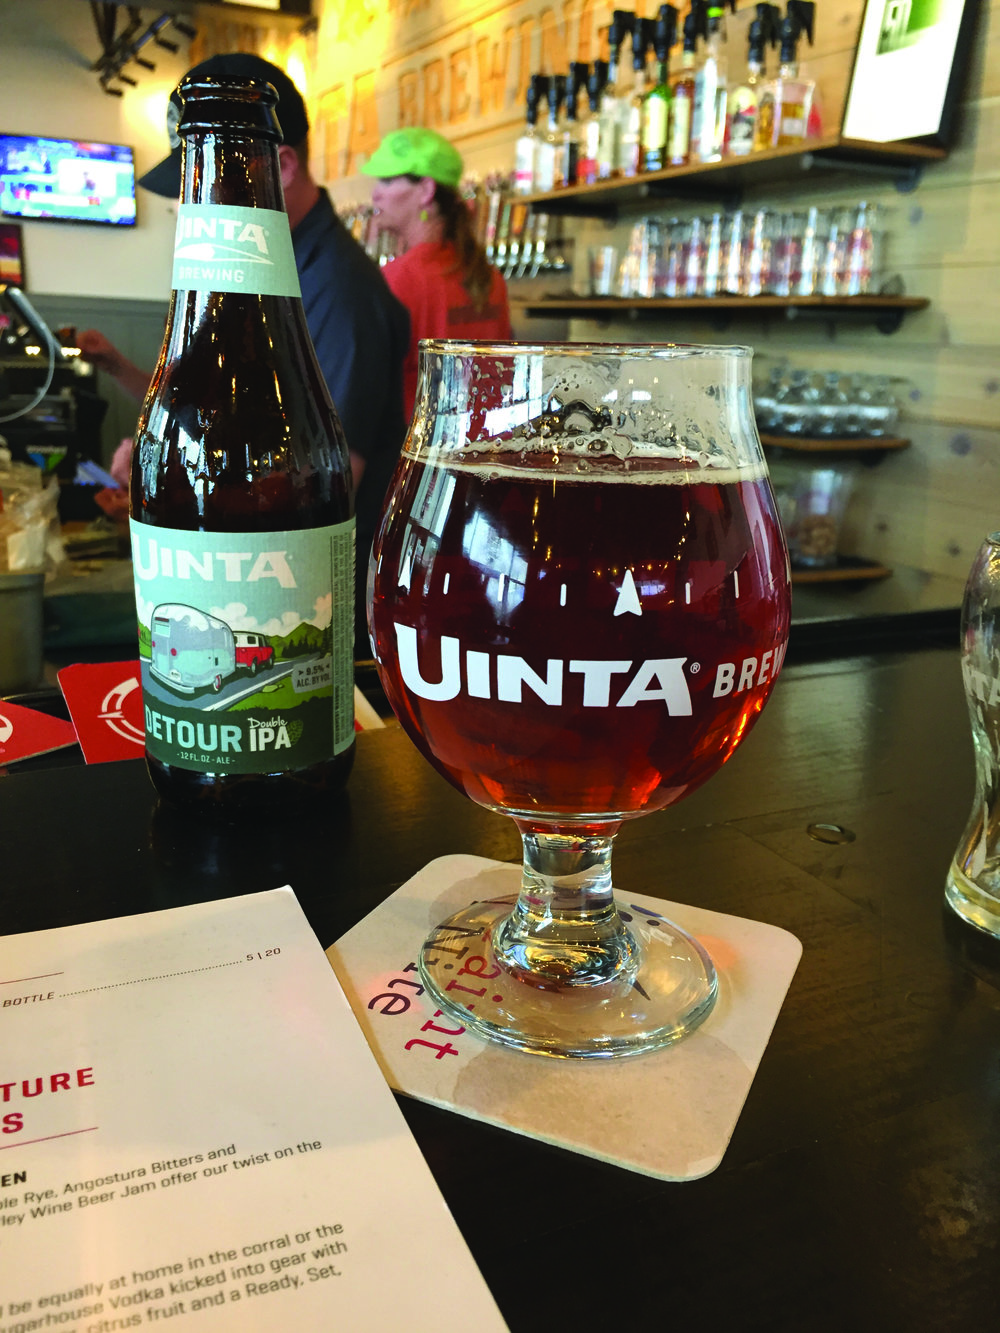 A Detour IPA is poured at Uinta Brewing Co. in Salt Lake City. Photo Neill Pieper